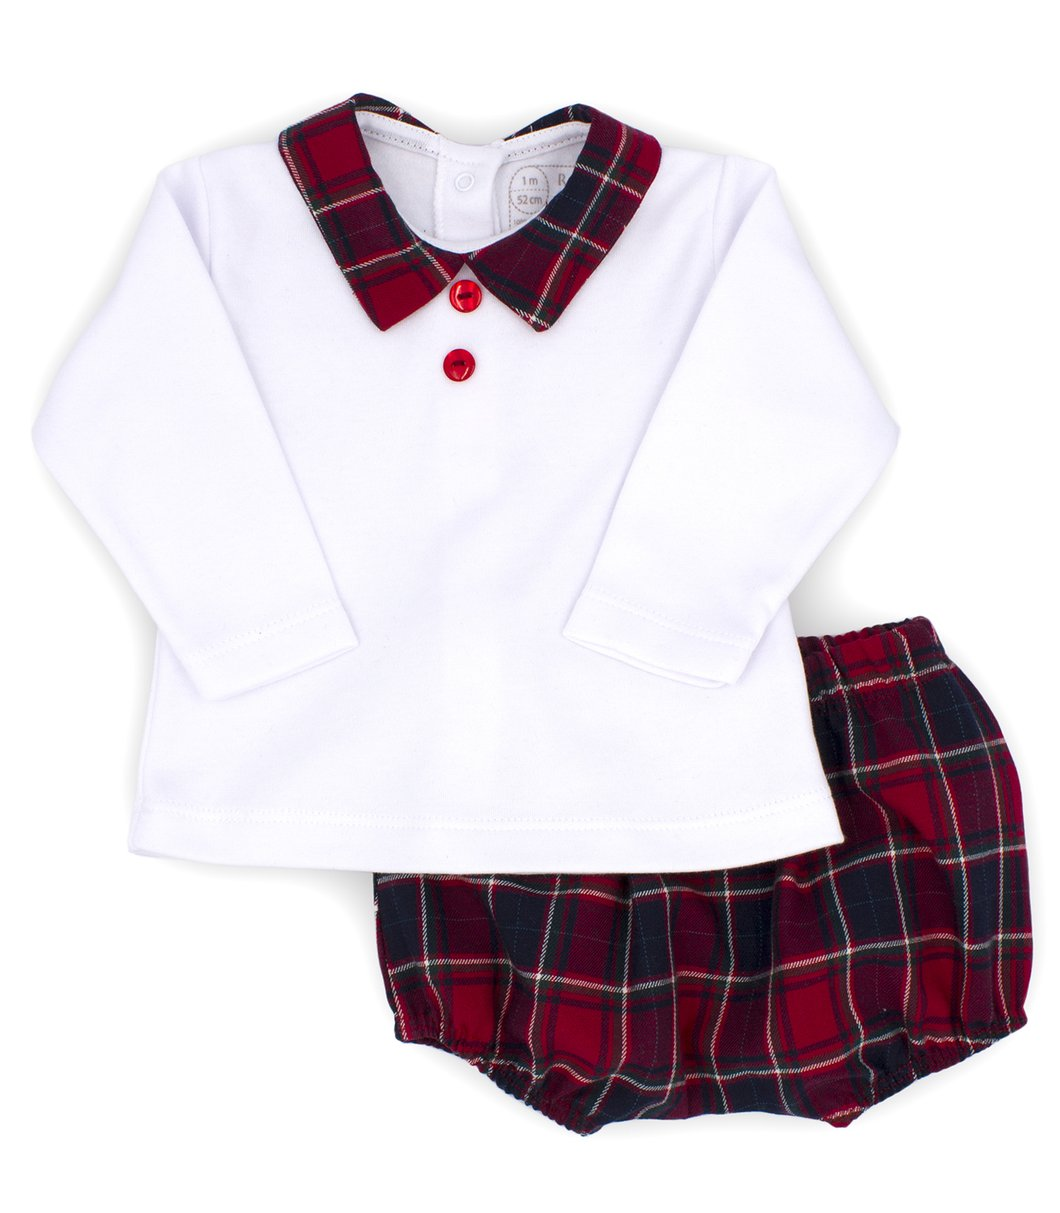 Rapife AW20 Boys Tartan Jam Pants Set